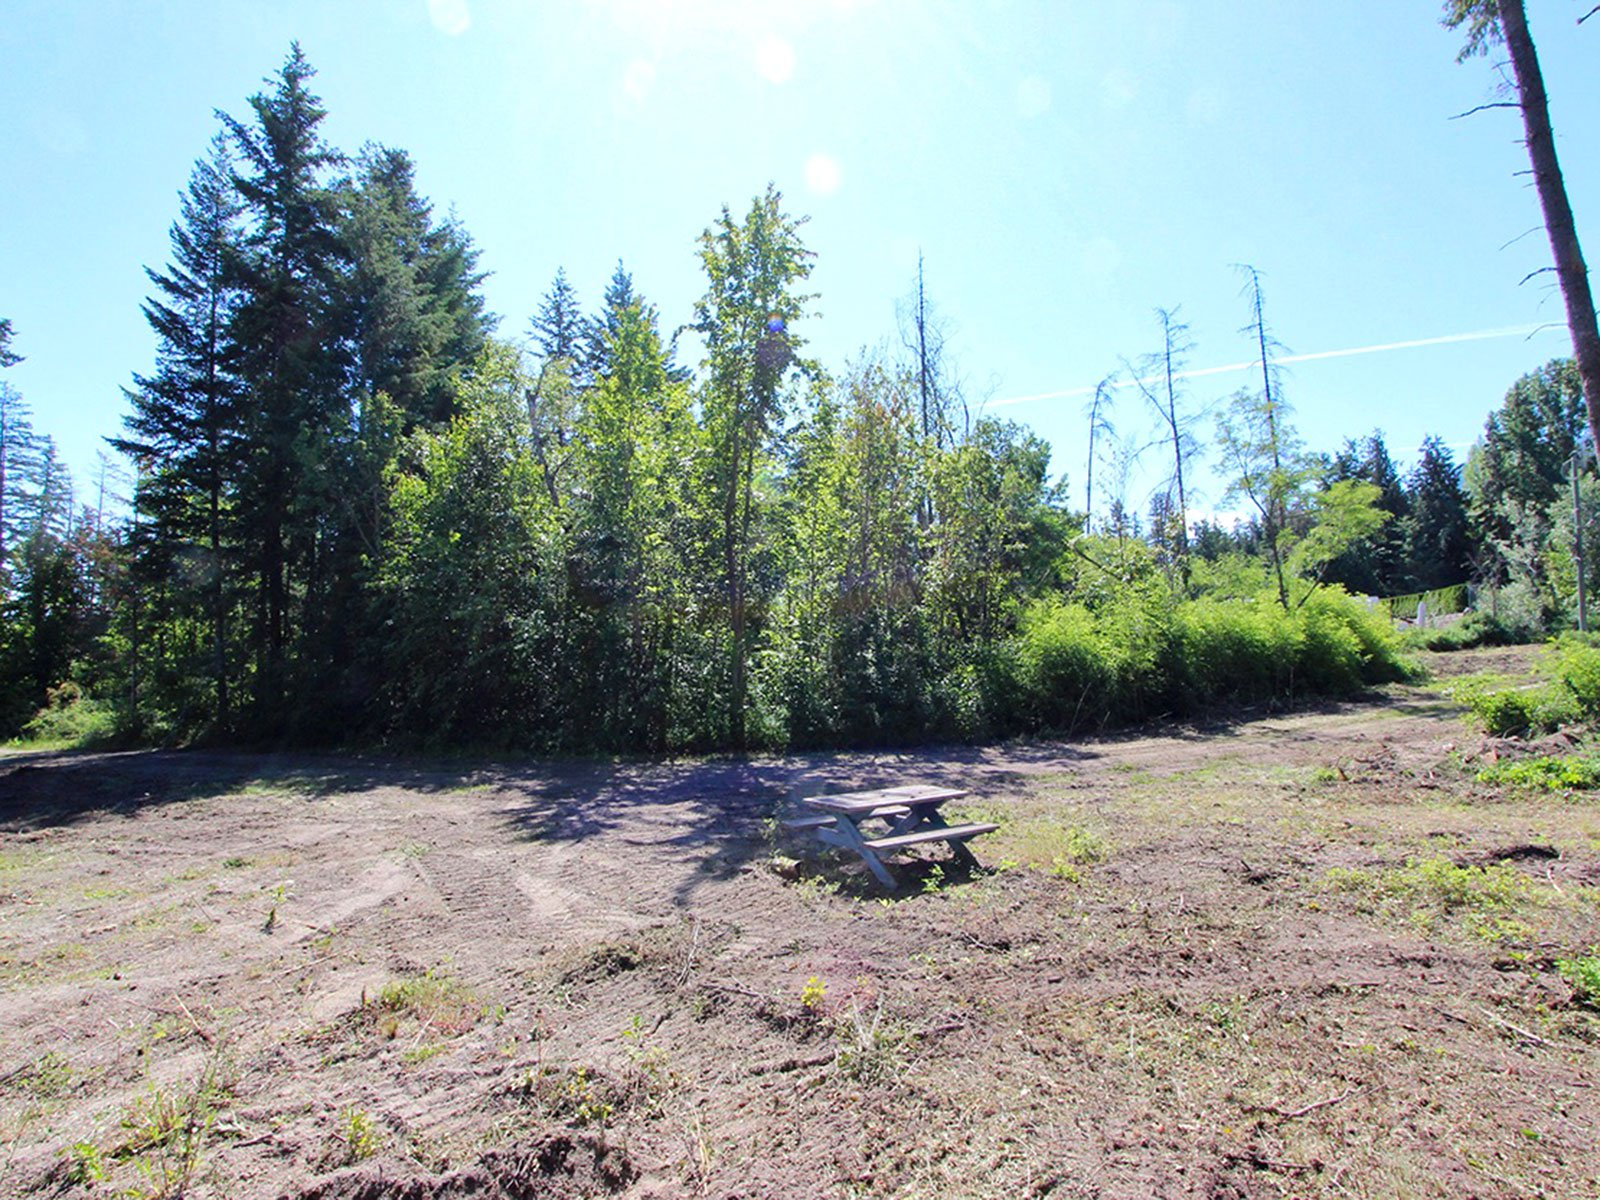 Photo 21: Photos: 663 Waverly Park Frontage Road in Sorrento, BC: Land Only for sale (Sorrento)  : MLS®# 10186241